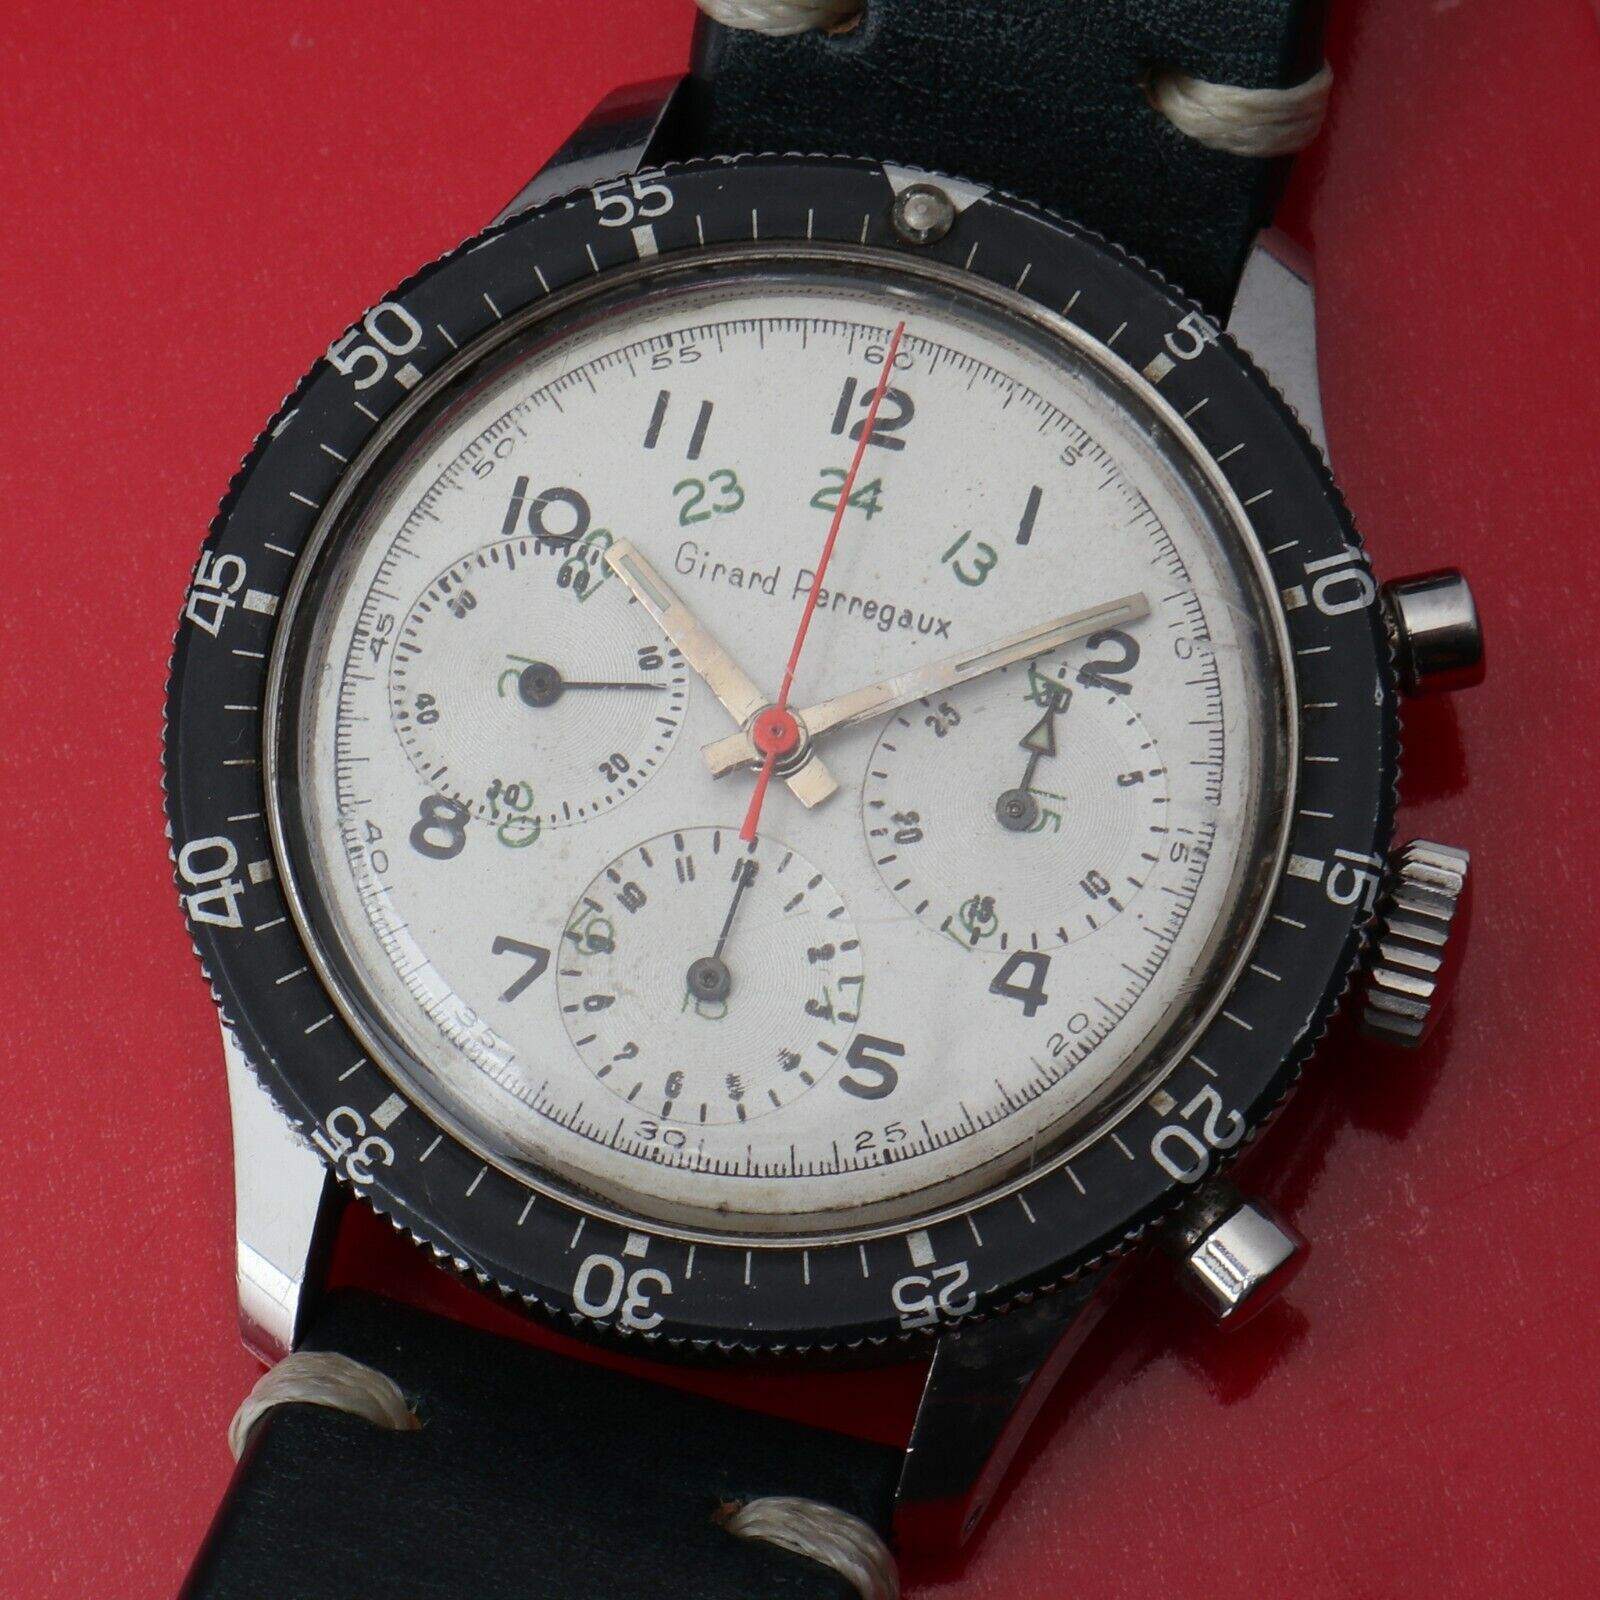 Vintage Girard-Perregaux Chronograph Wristwatch Valjoux 72 Flyback RARE - watch picture 1